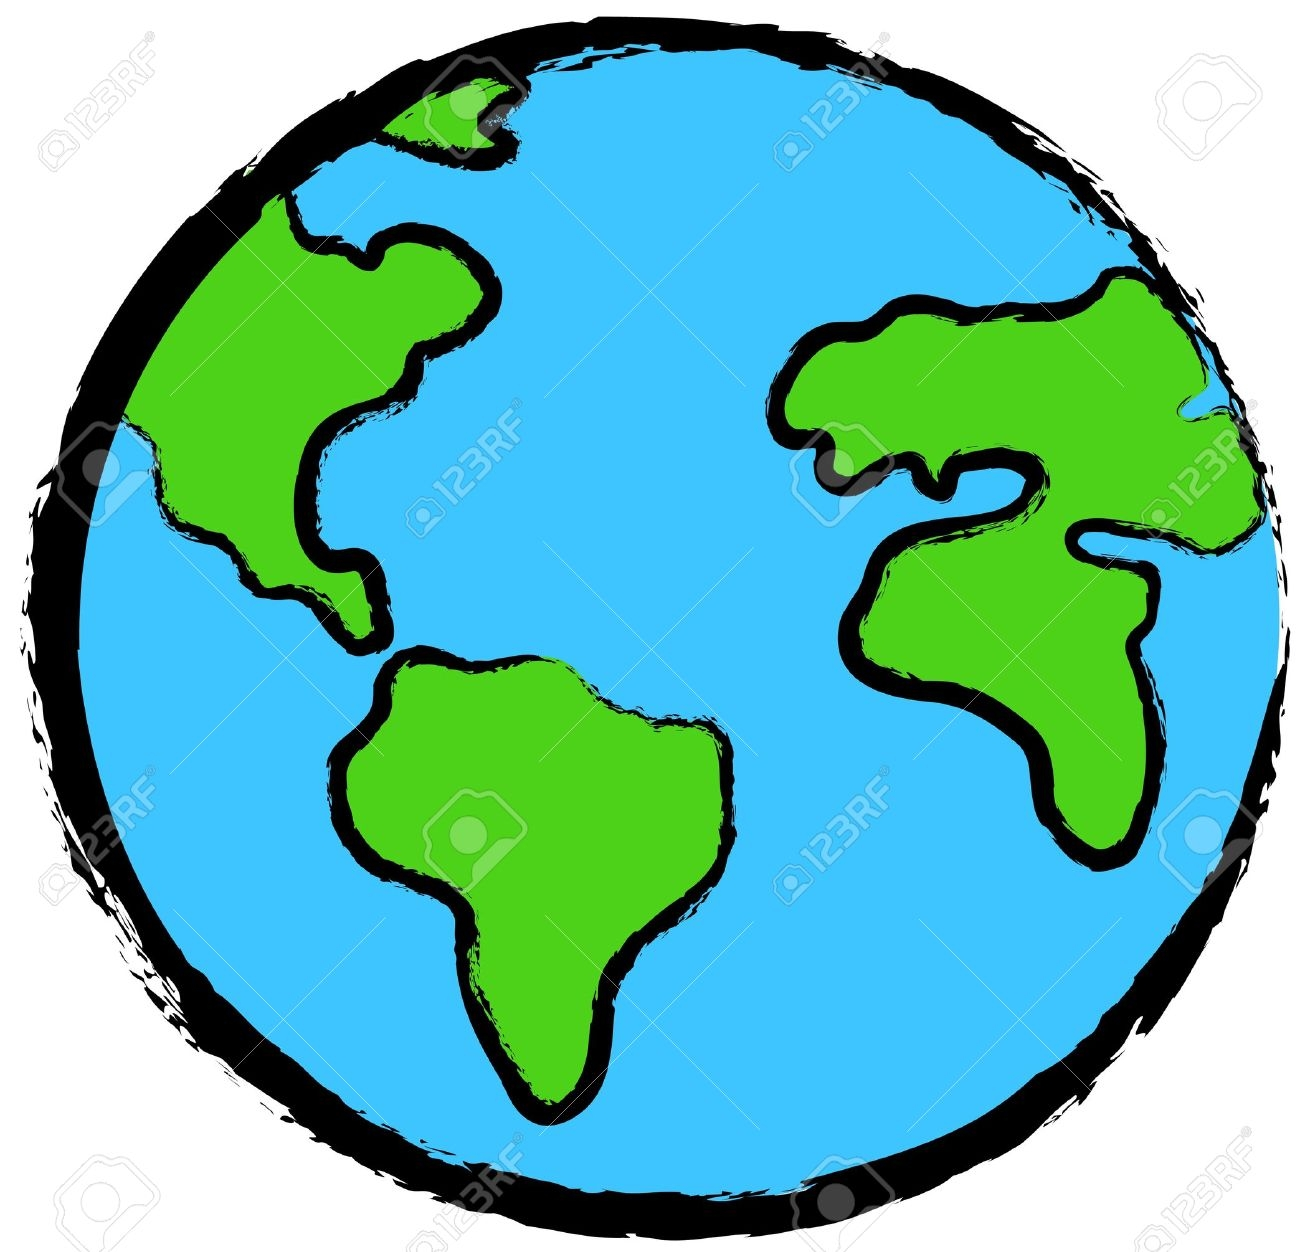 Earth clipart Luxury Planet Earth clipart art Pencil and in.